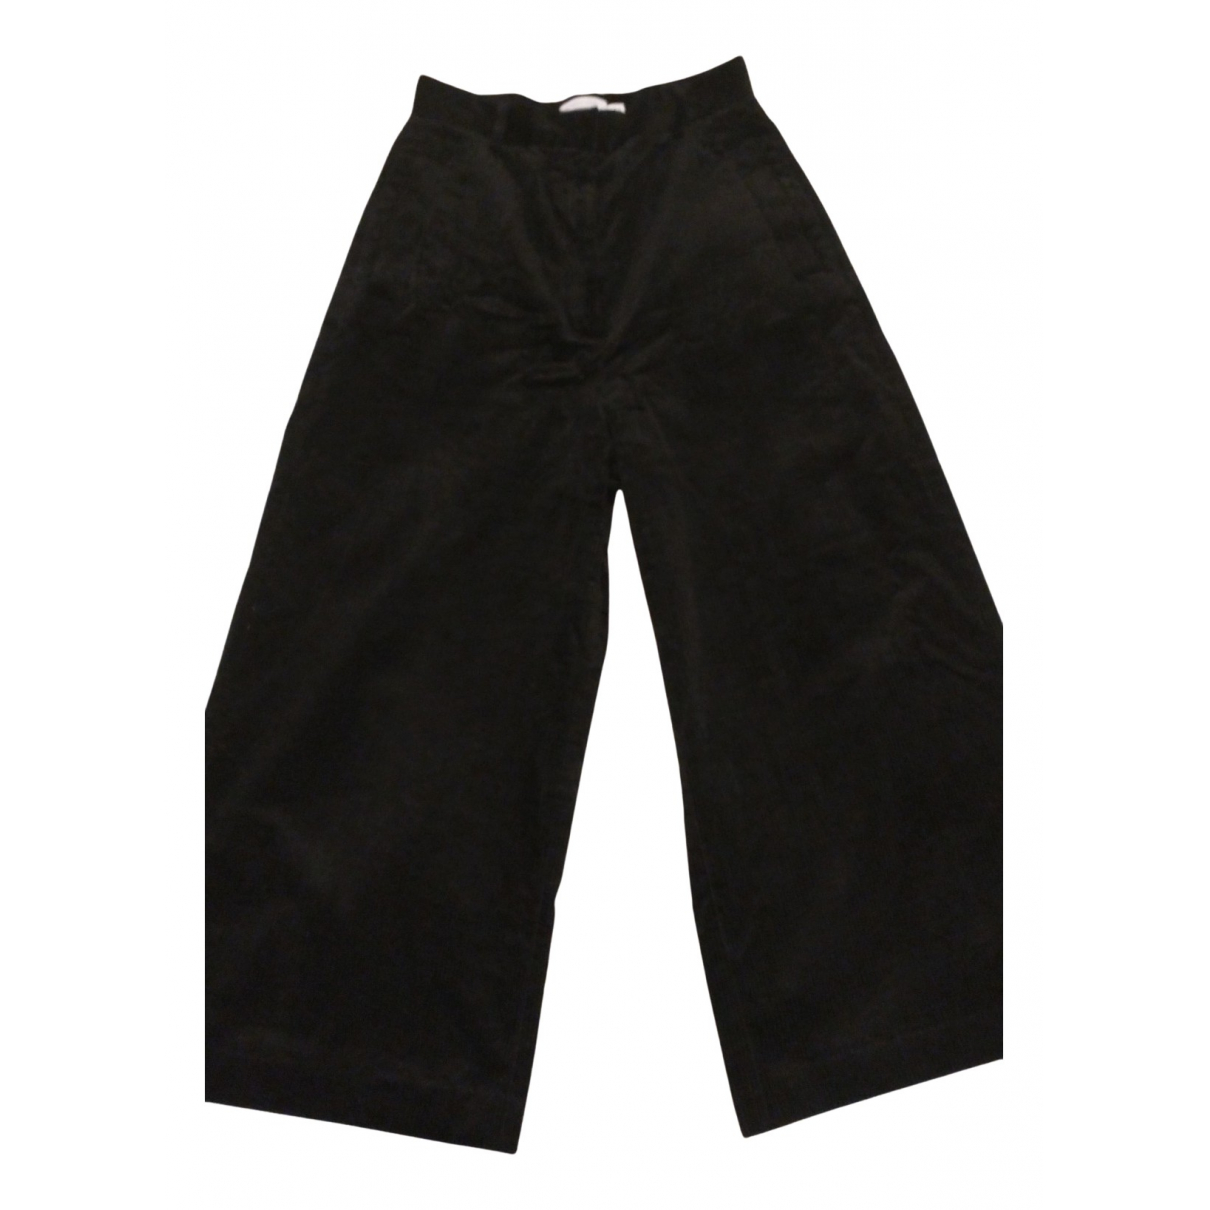 & Stories N Navy Cotton Trousers for Women 36 FR